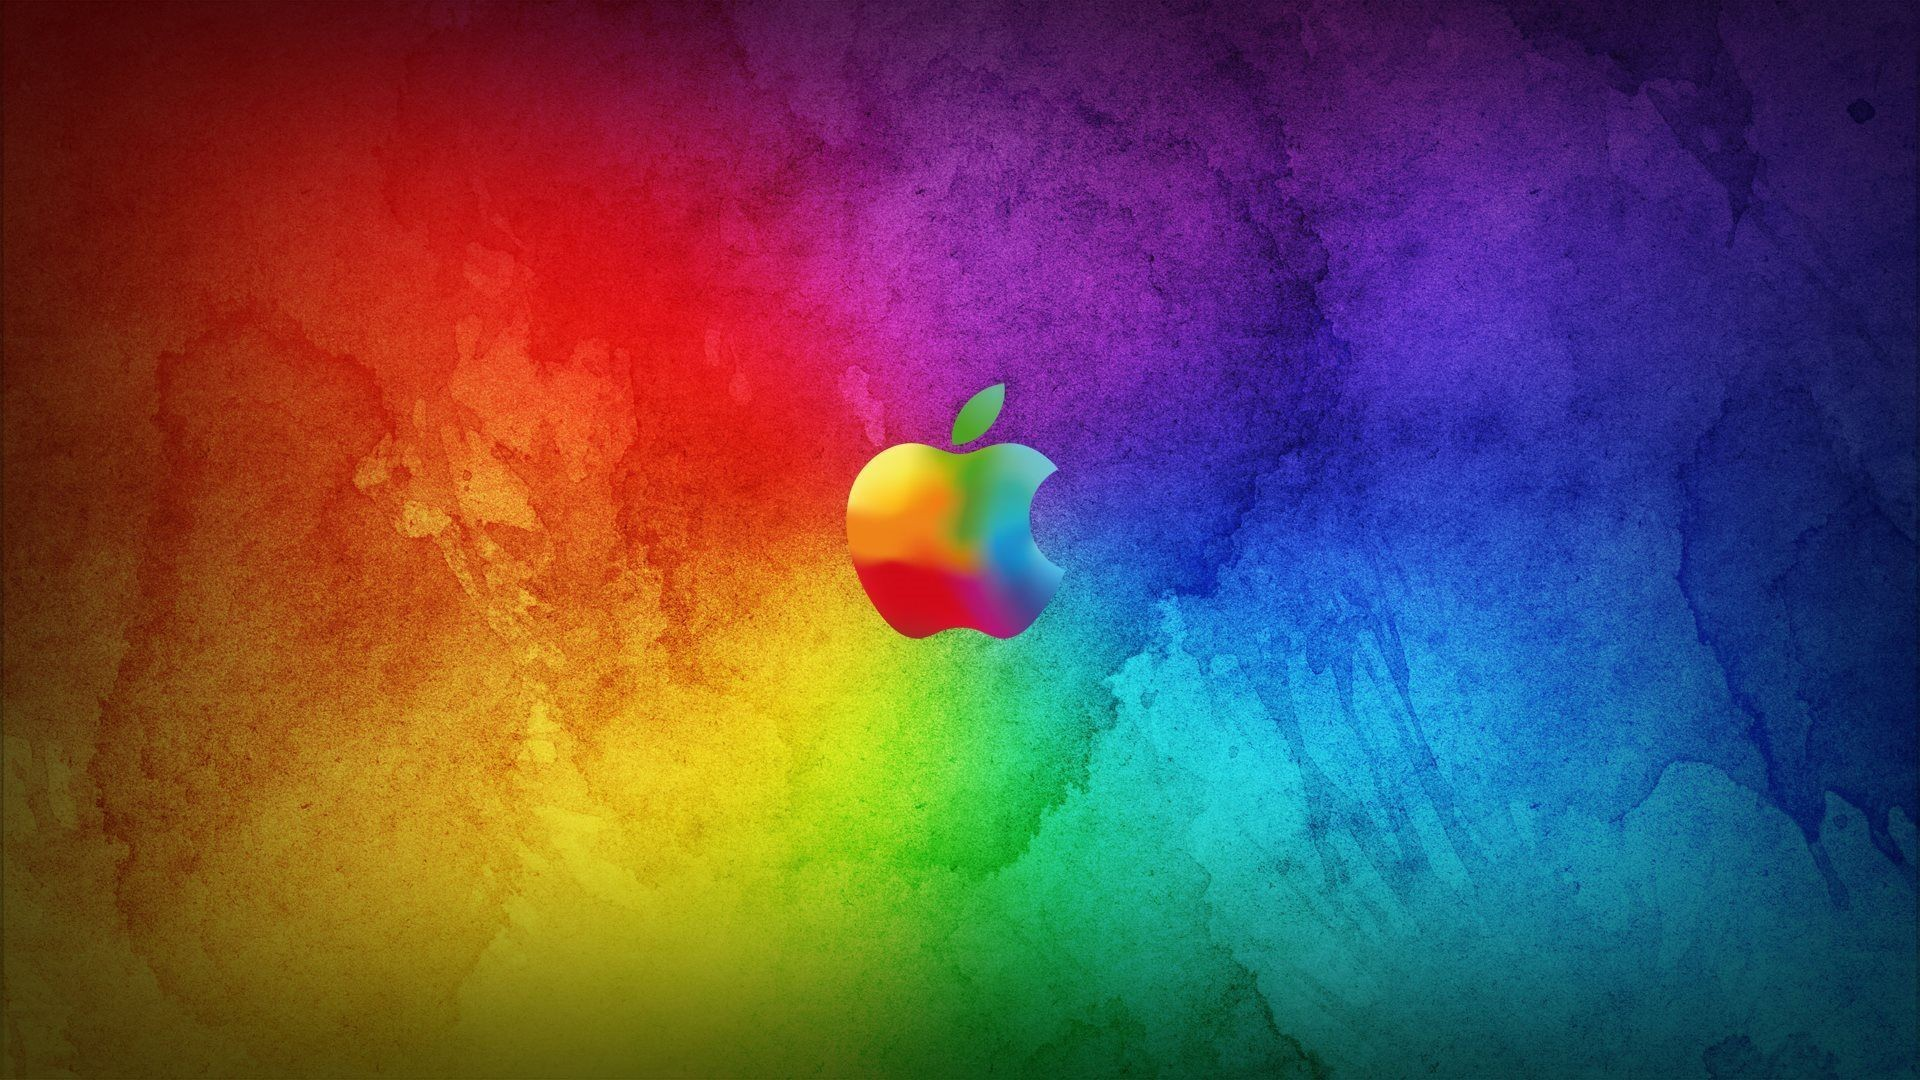 70 apple backgrounds download free awesome backgrounds for